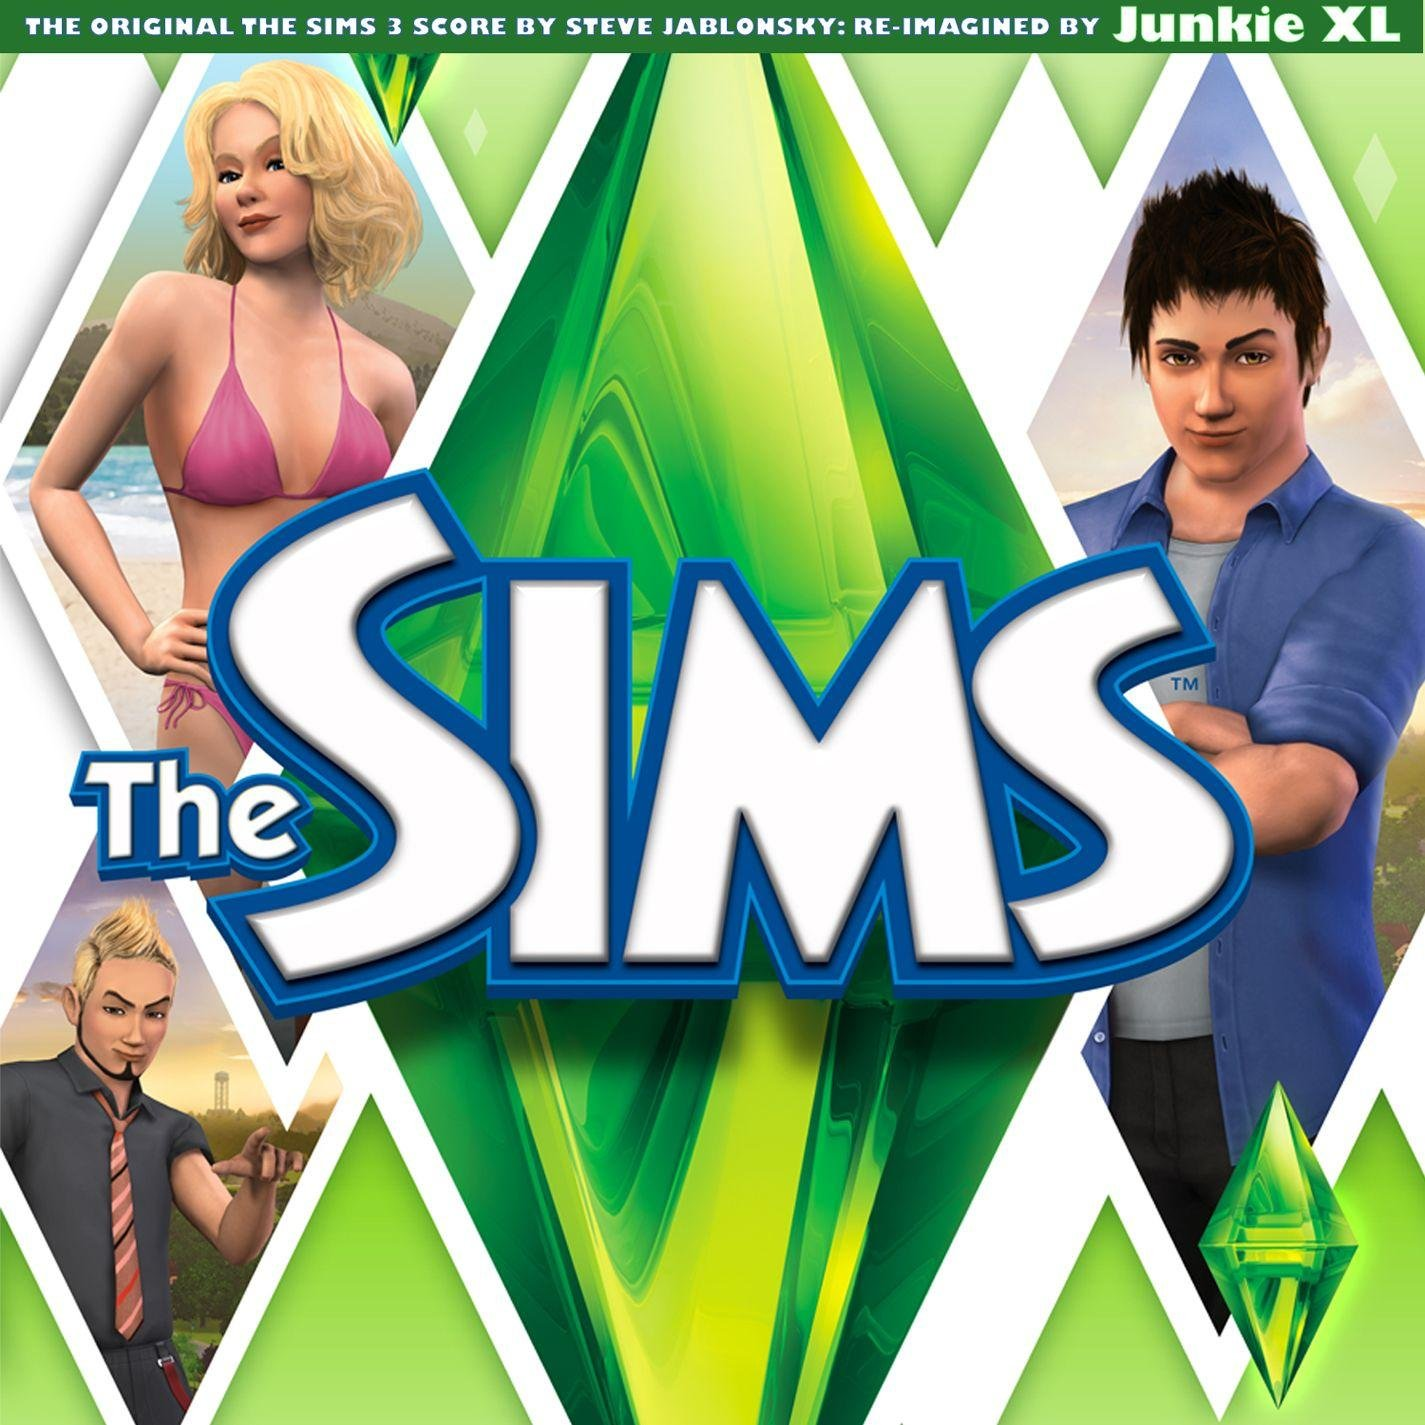 The original the sims 3 score by steve jablonsky re for Sims 3 spielideen